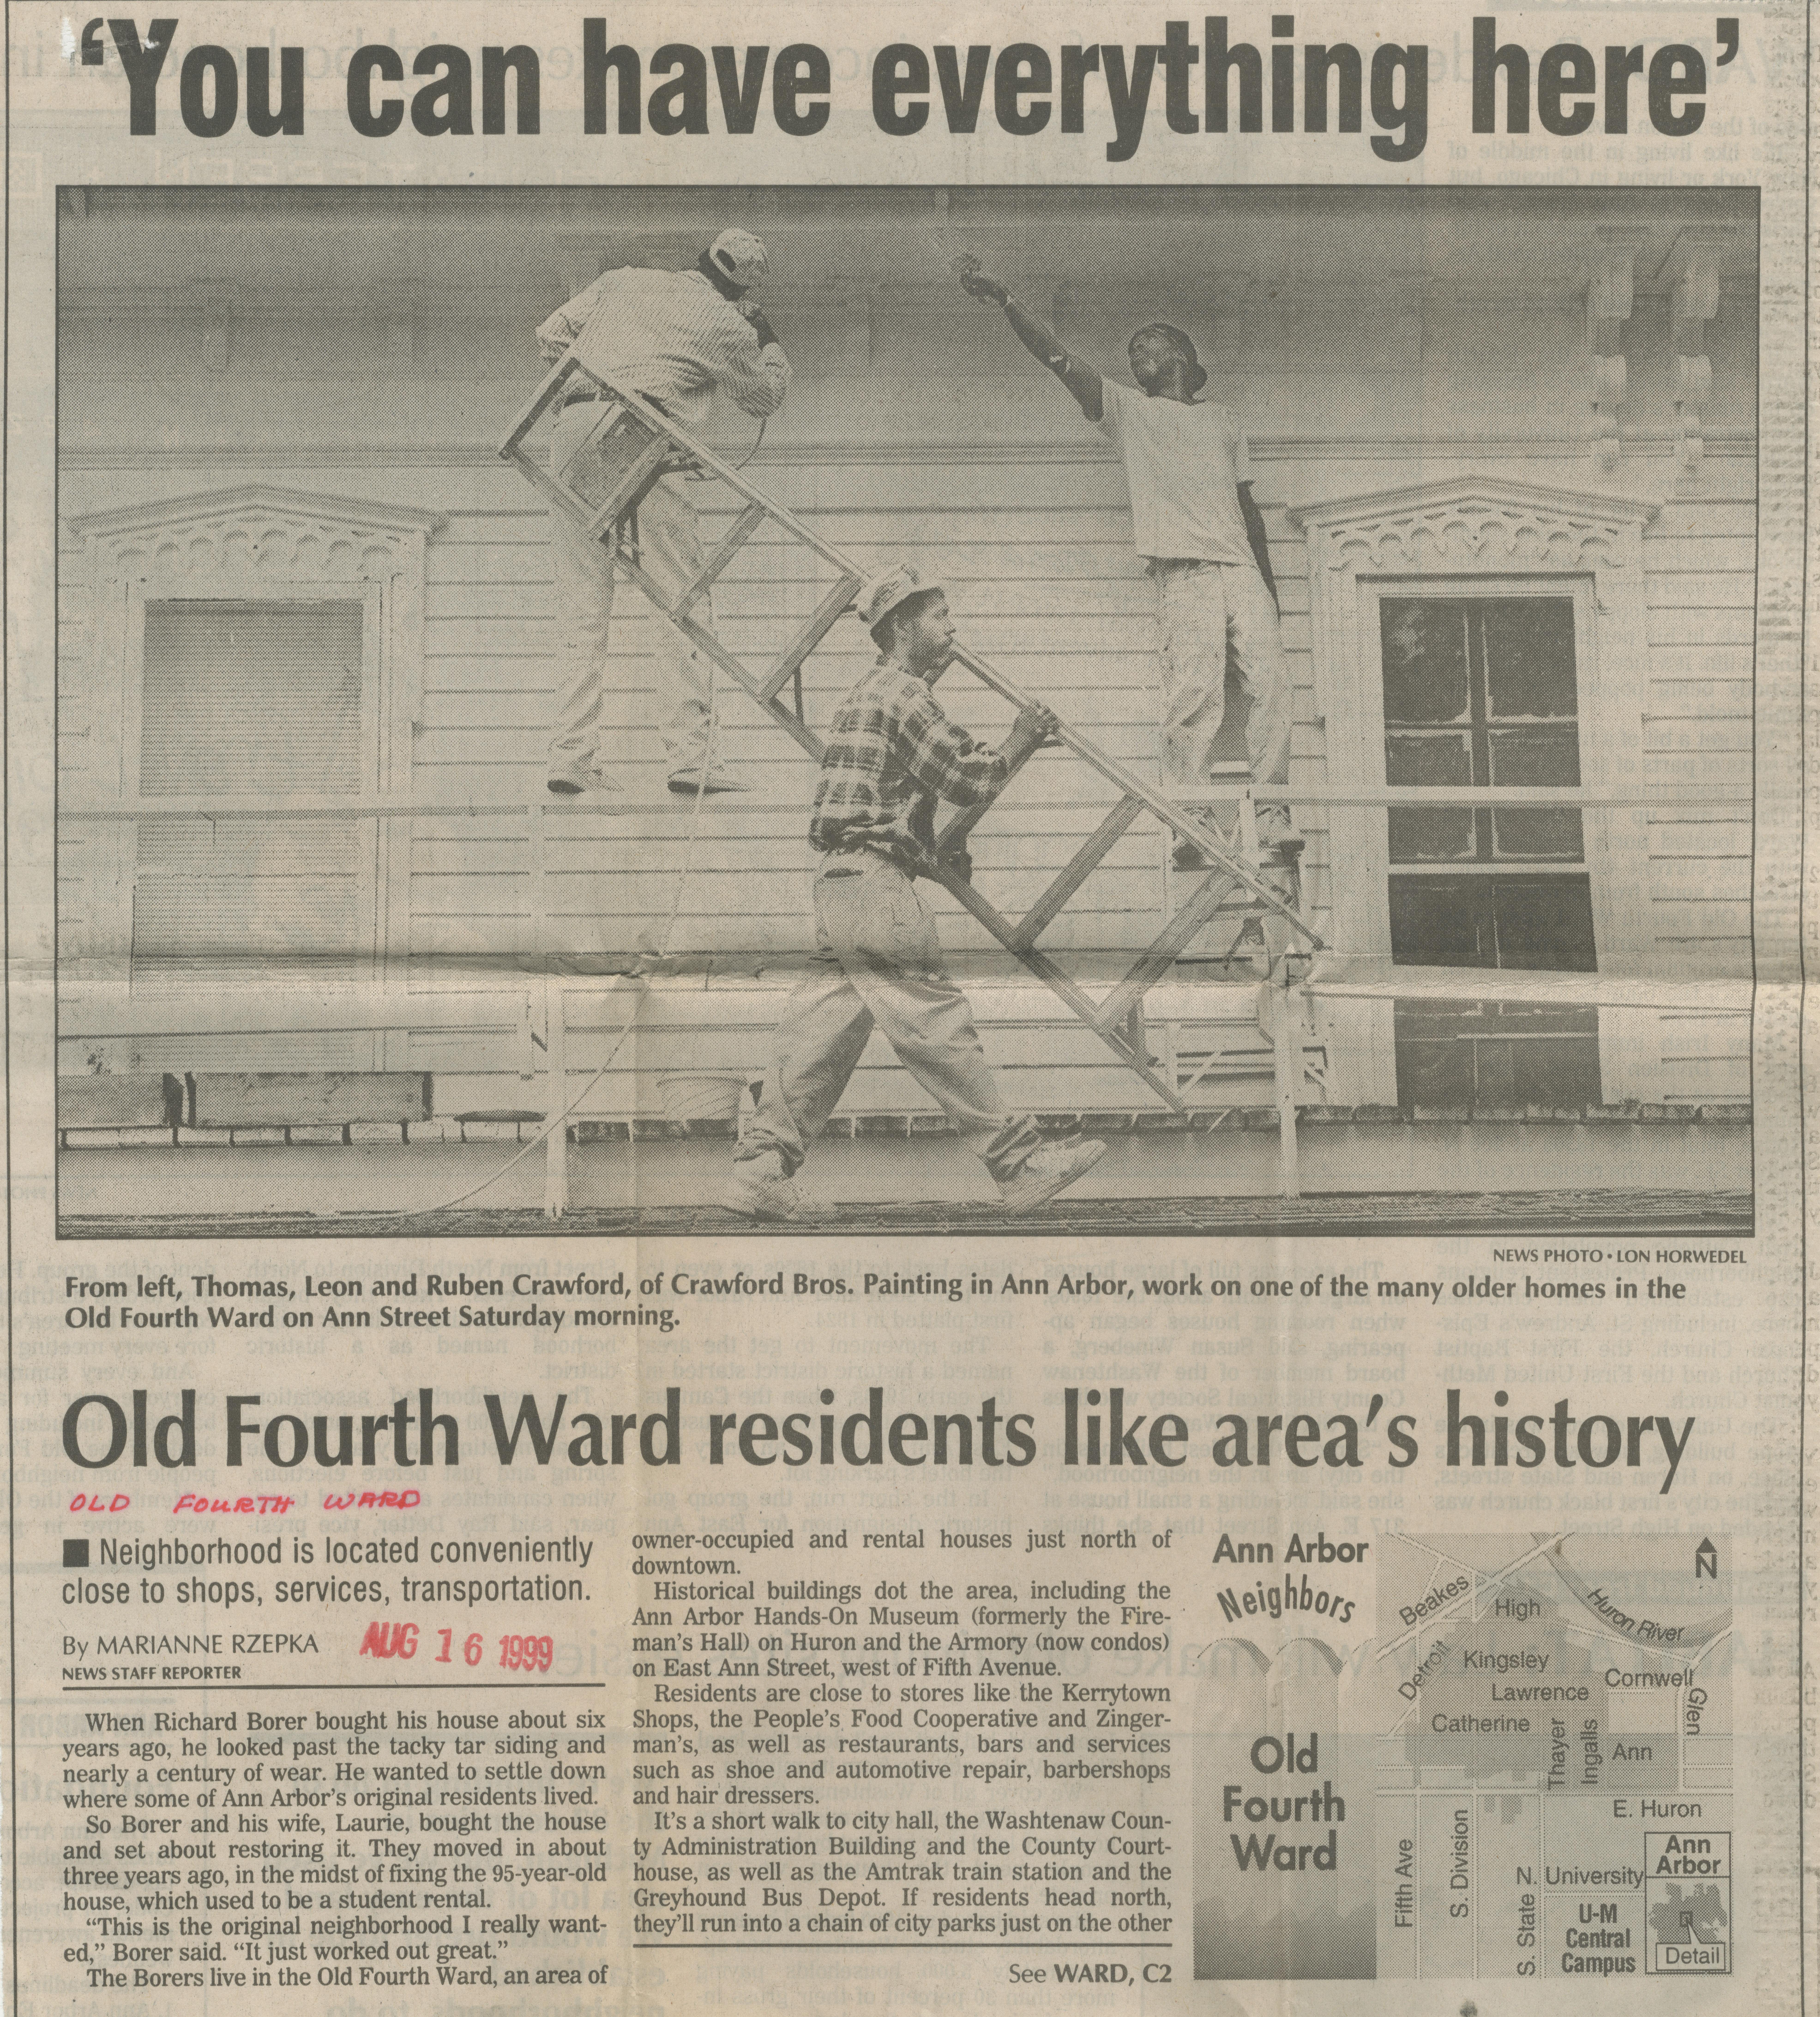 Old Fourth Ward residents like area's history image